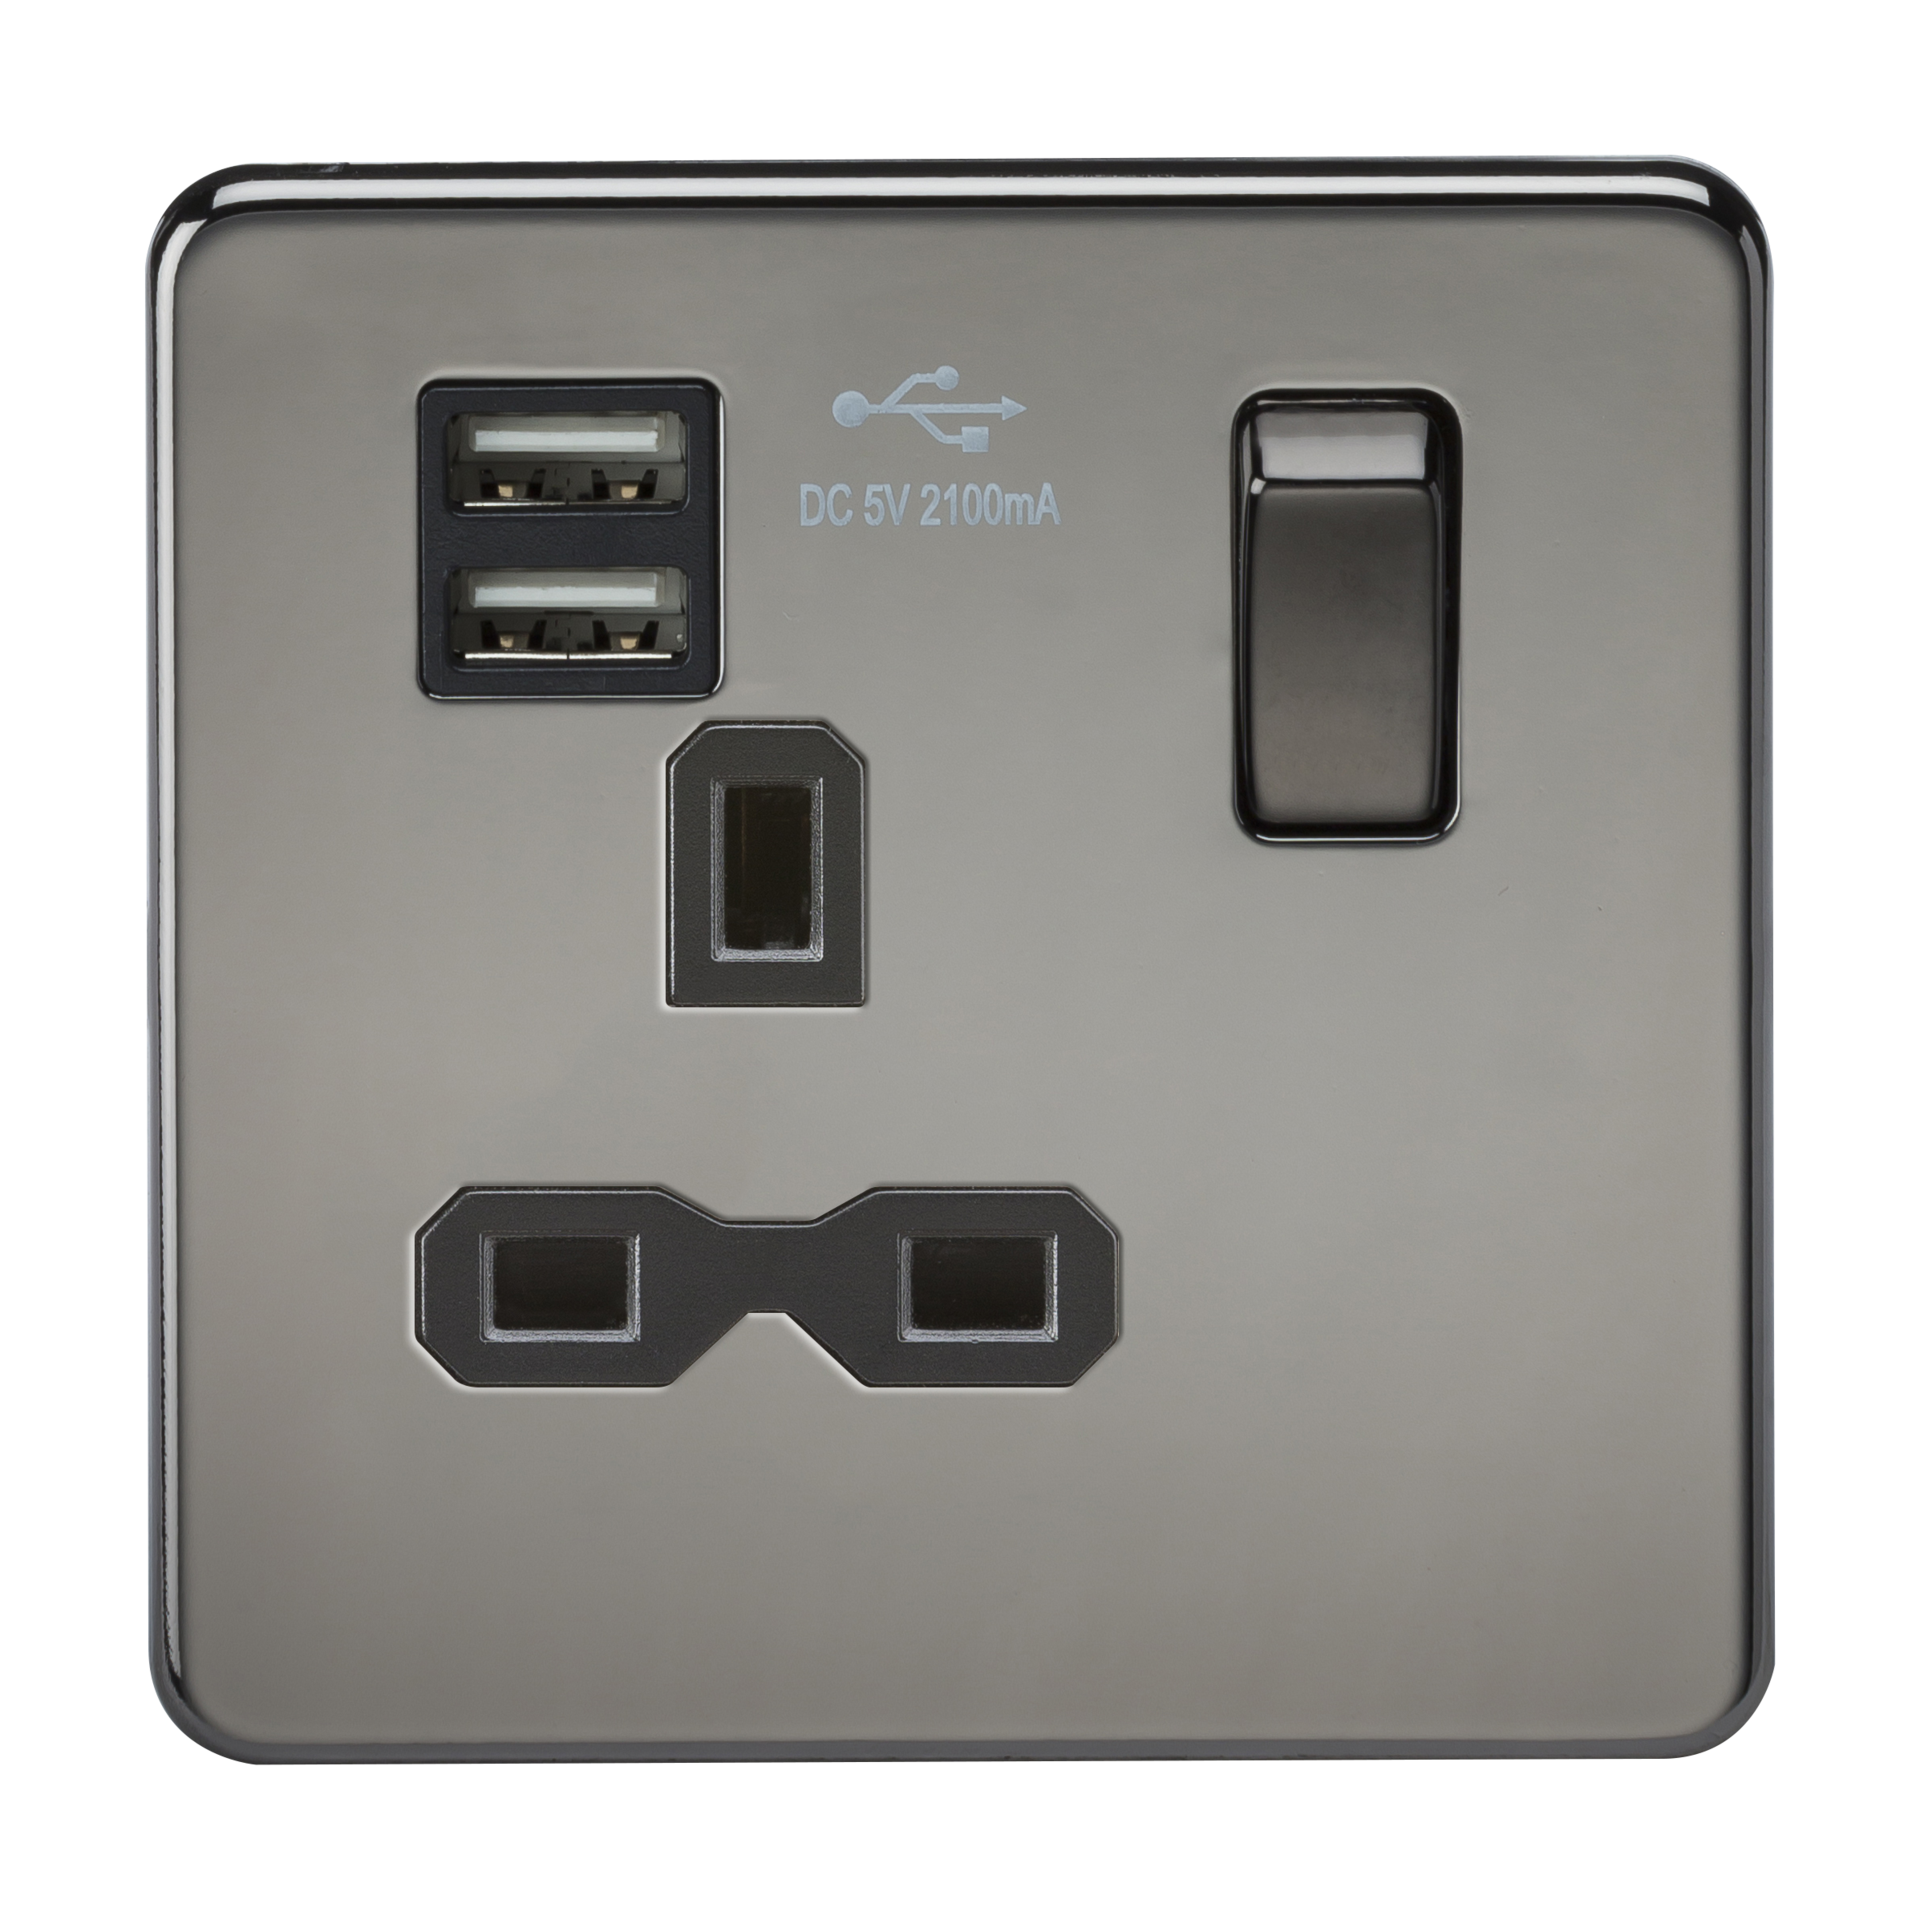 SCREWLESS 13A 1G SWITCHED SOCKET WITH DUAL USB CHARGER - BLACK NICKEL WITH BLACK INSERT